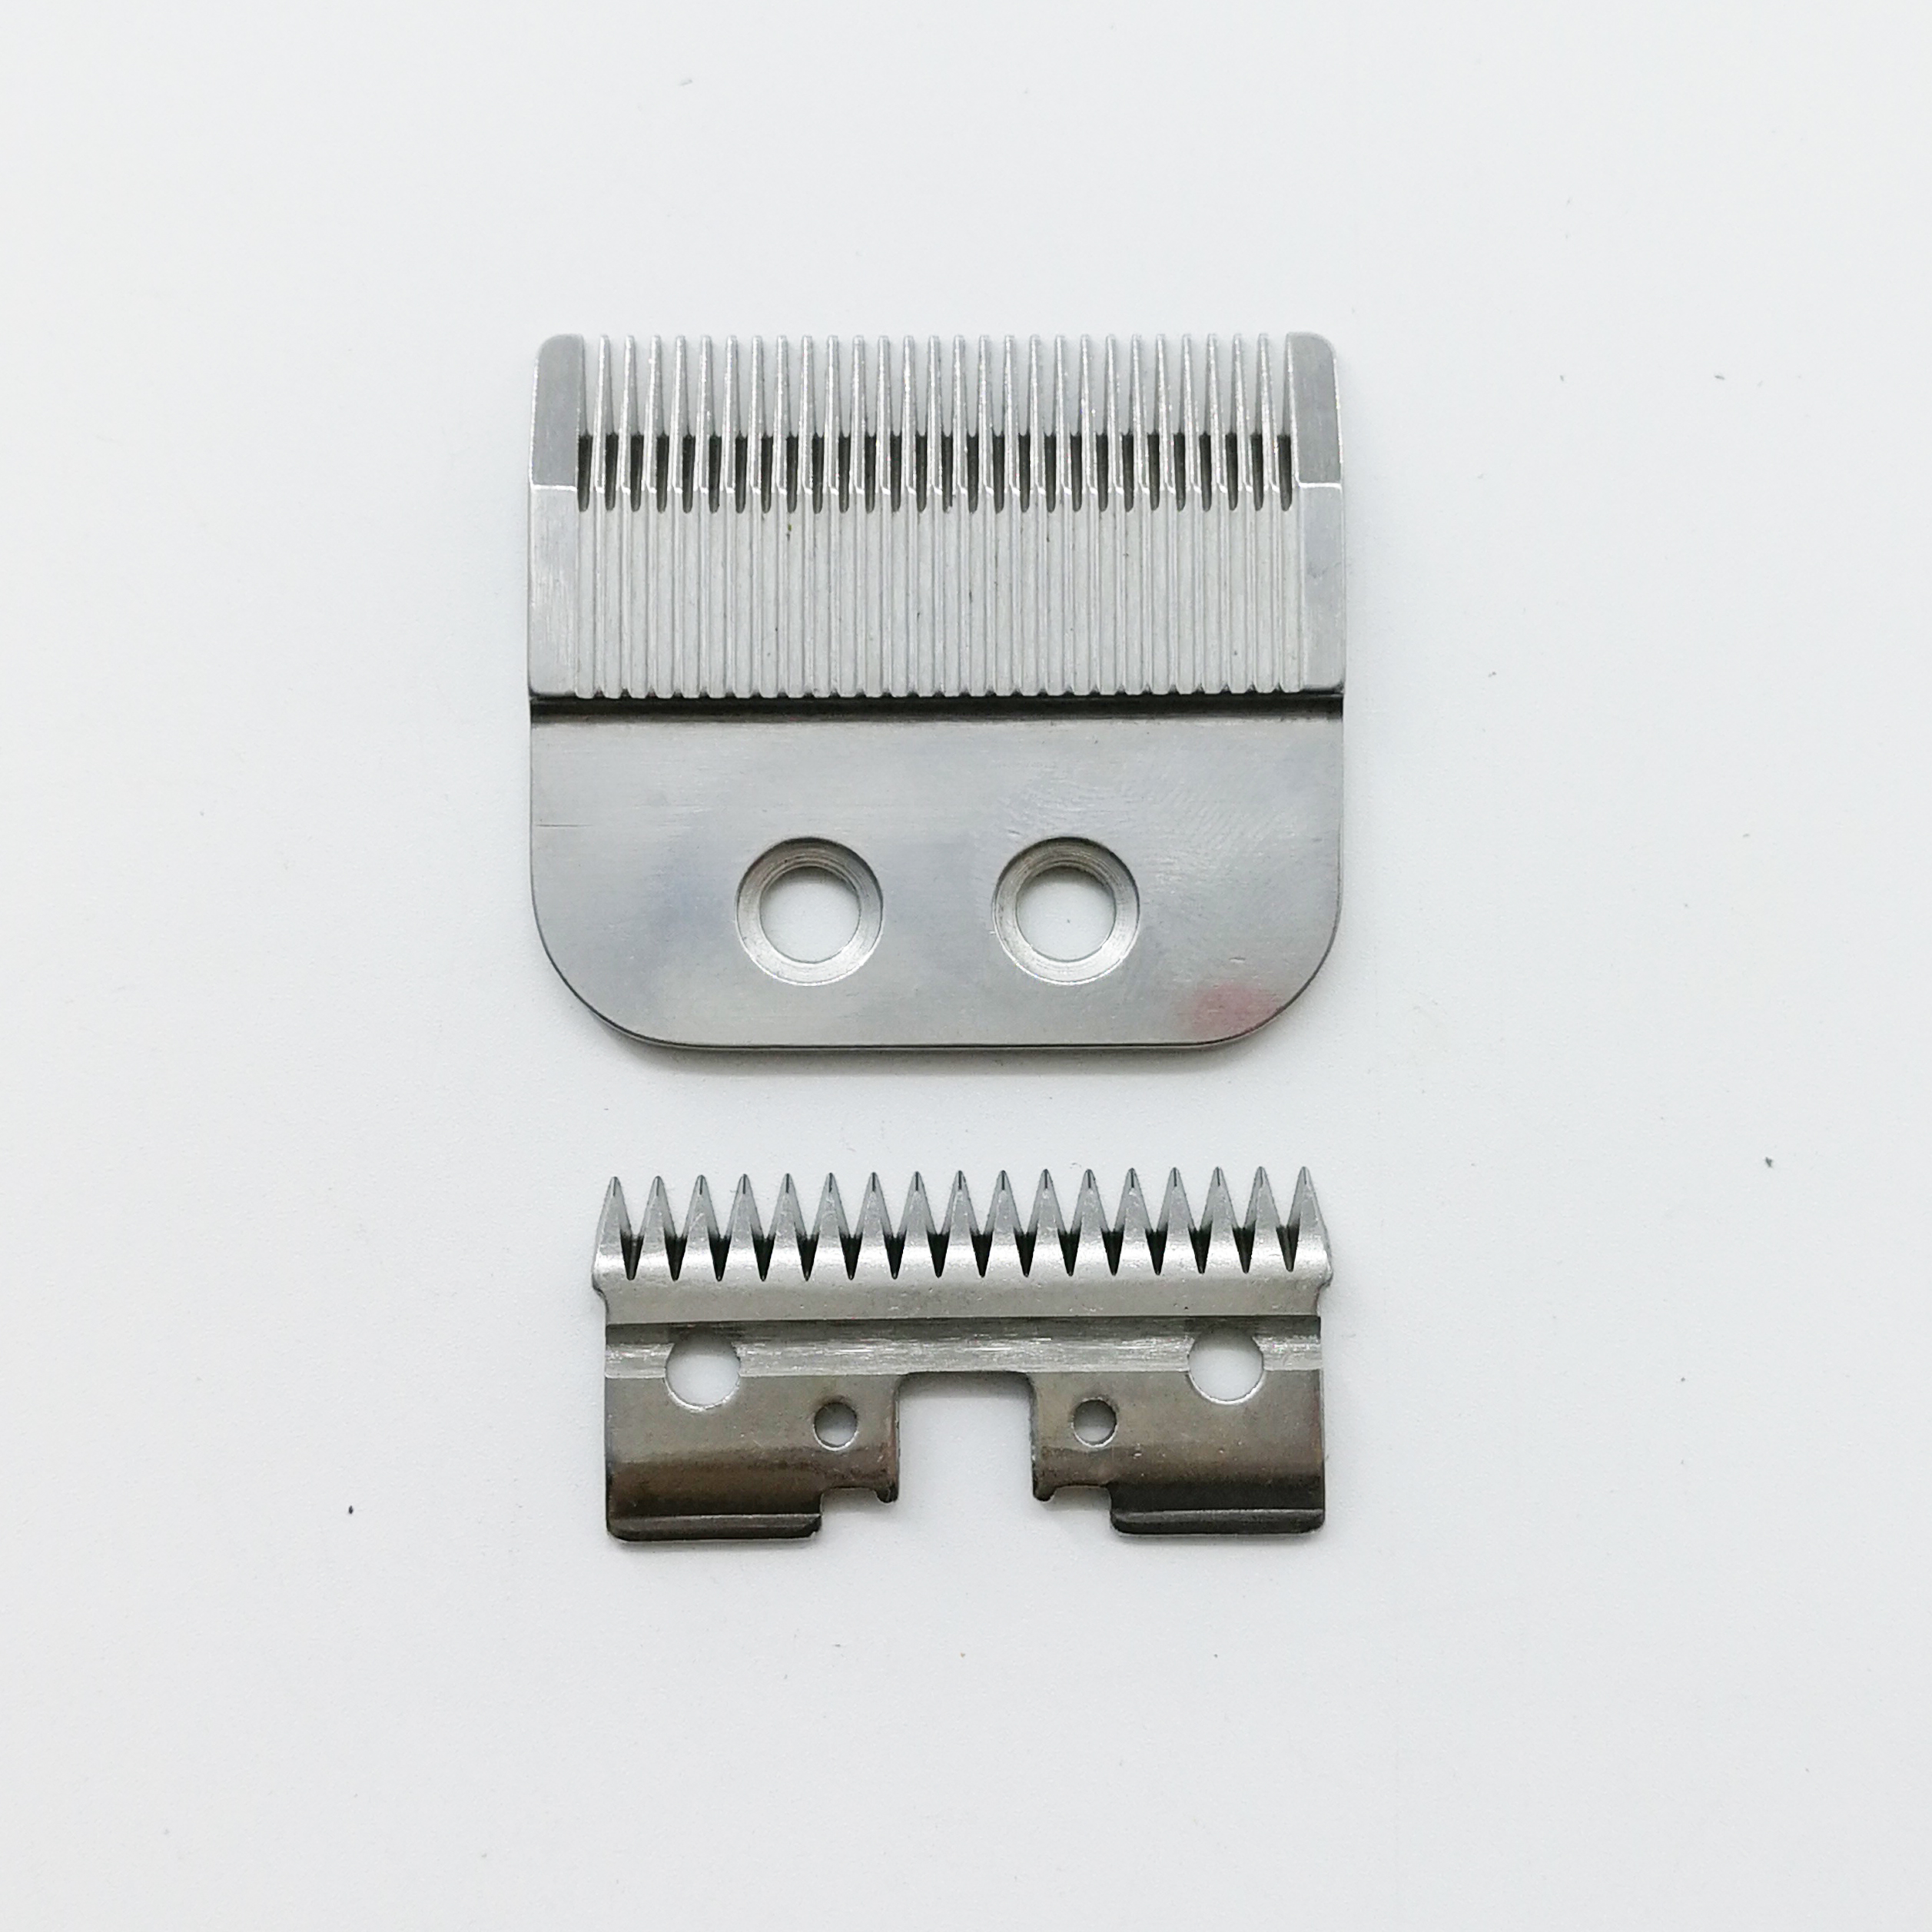 Replacement Dog Clipper Blade Fits andis PM1 PM1L PM2 PM4 #23435 image